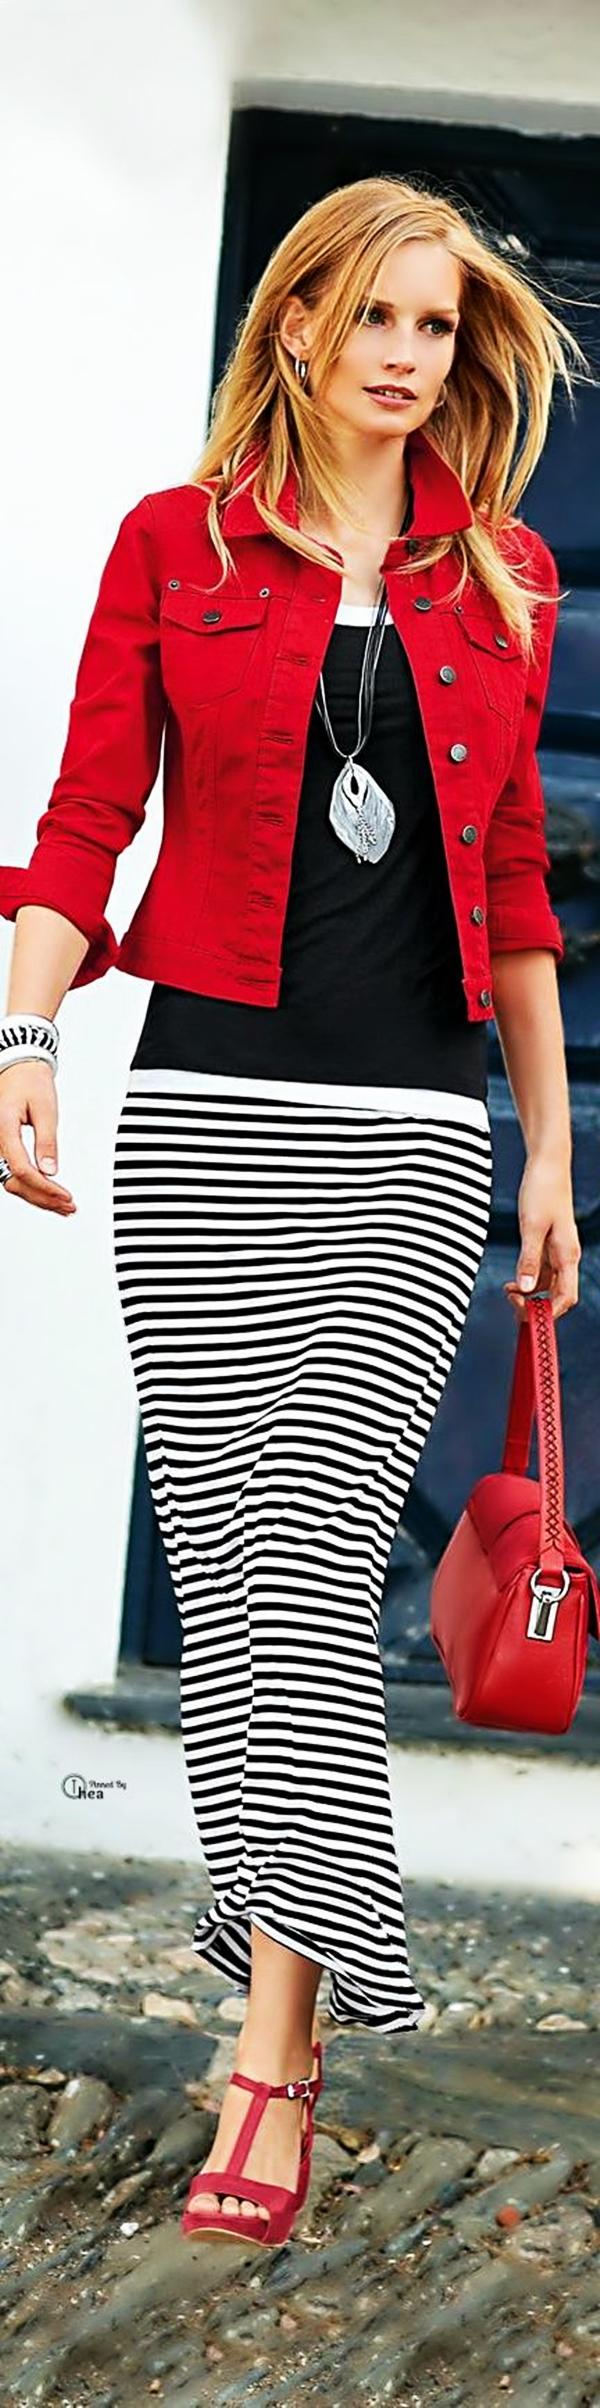 Trending Striped Skirt Outfits For 2016 - (23)